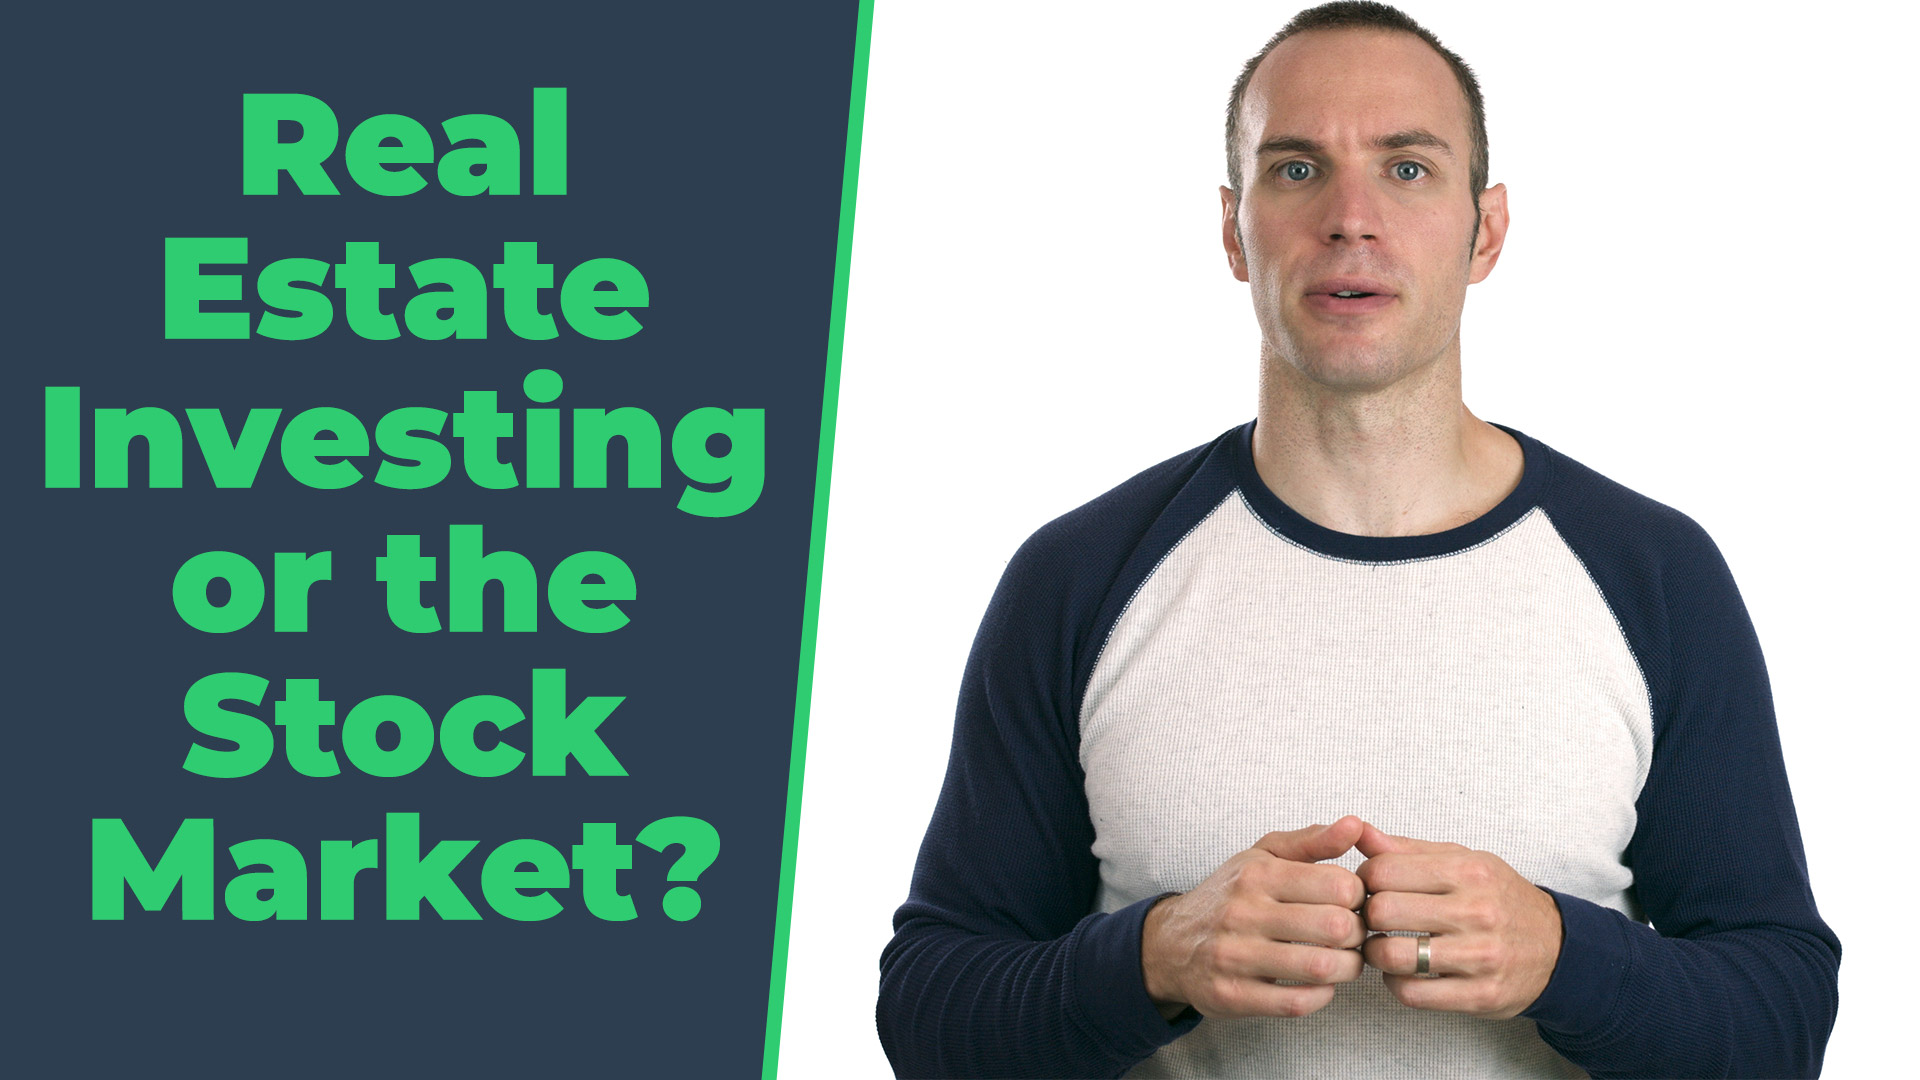 Real Estate Investing or the Stock Market?